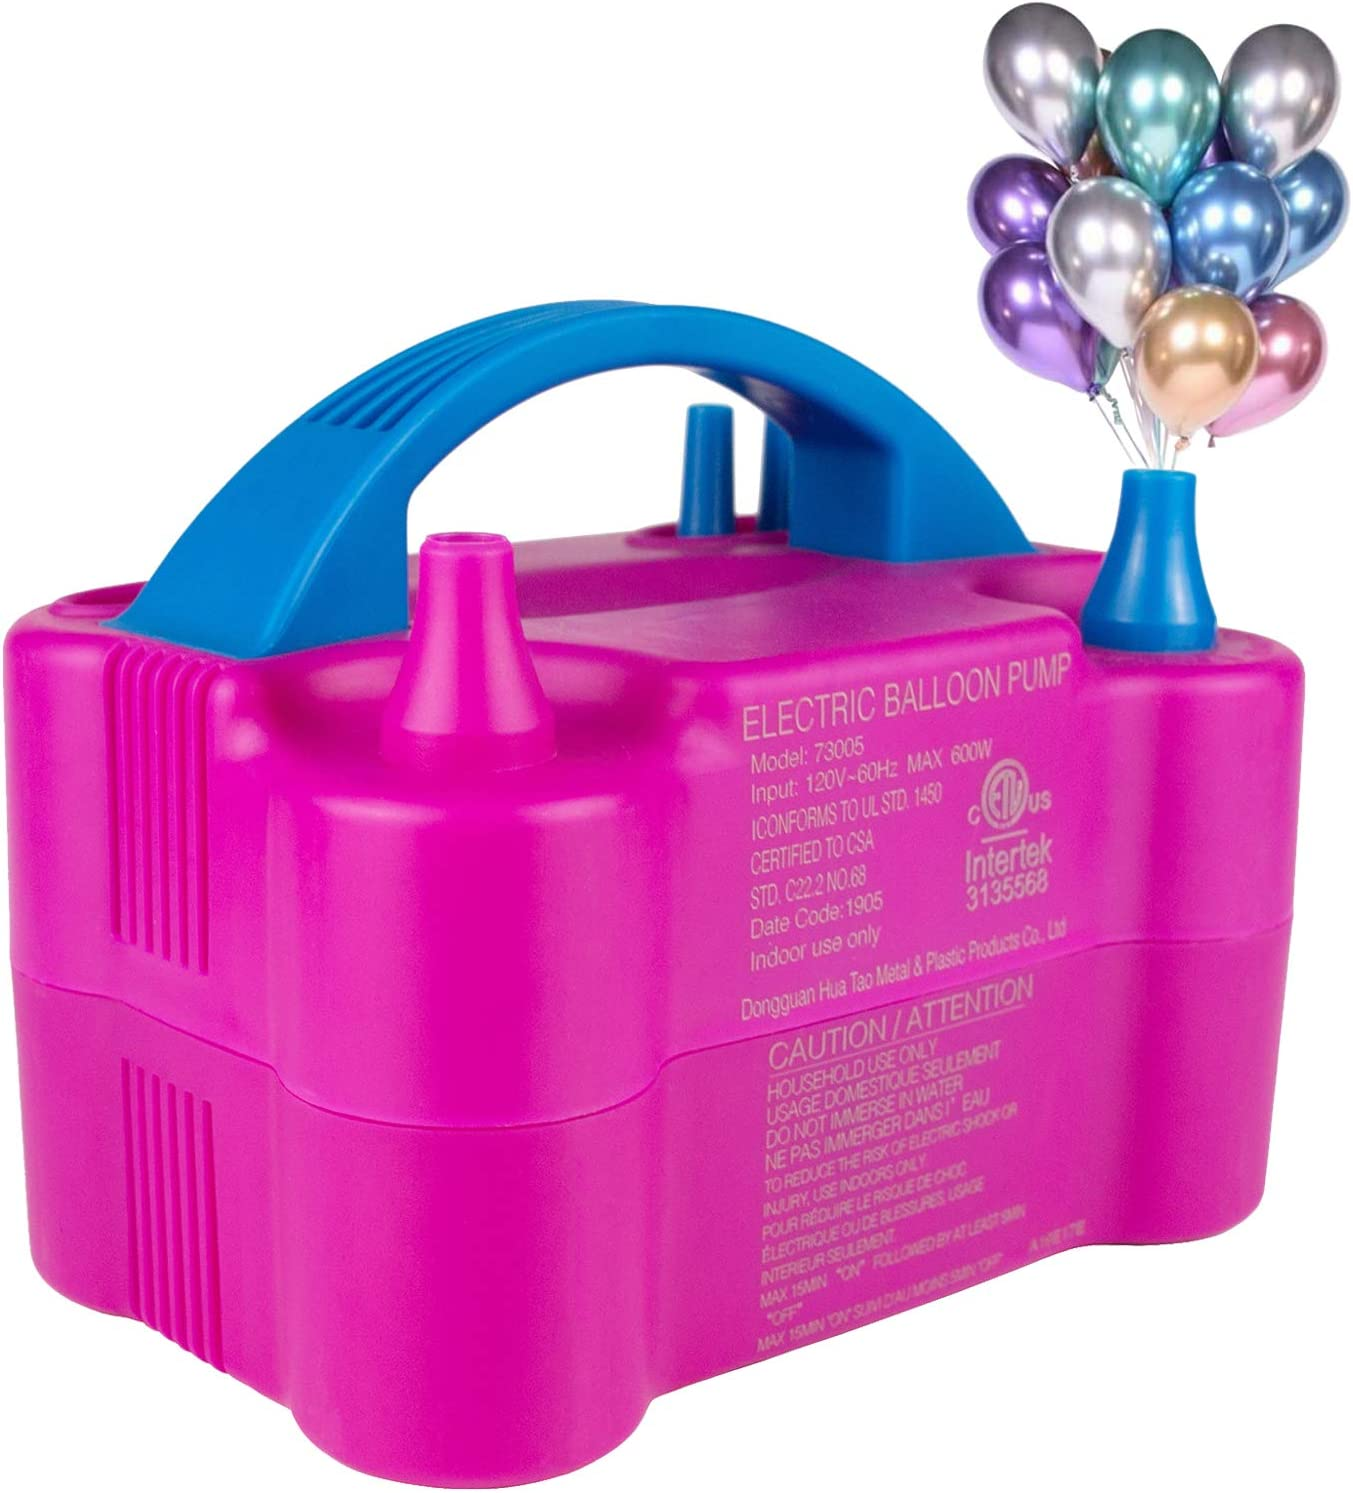 Balloon Pump for Party Decoration and Event Rose Red, 110V-120V AC, 600W Electric Balloon Inflator Portable Dual Nozzle Balloon Air Pump